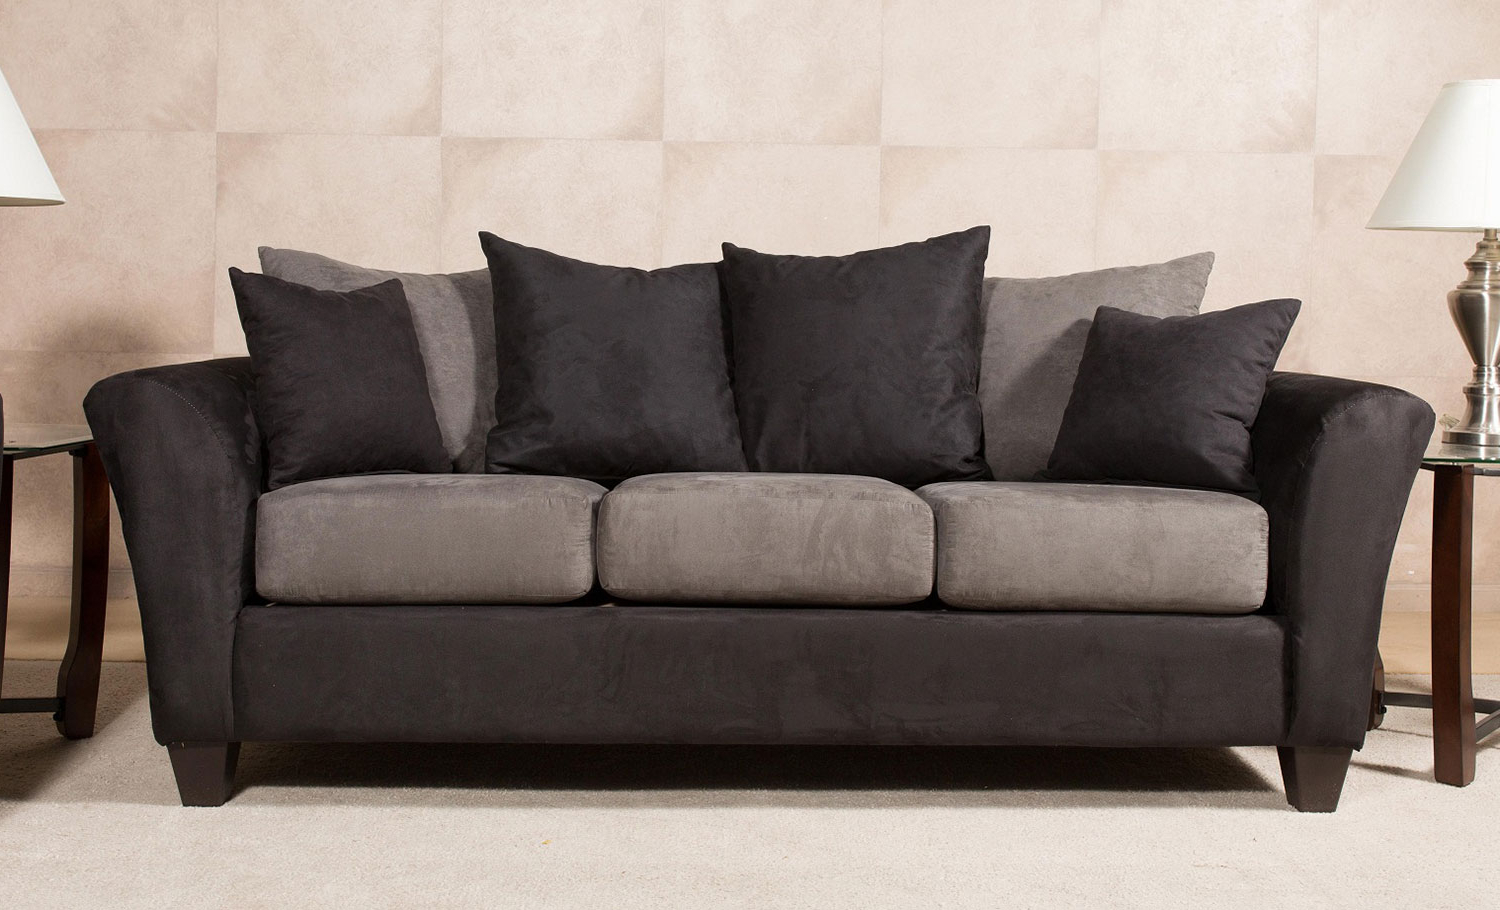 Mansfield Cocoa Leather Sofa Chairs Pertaining To Most Up To Date Chelsea Home Mansfield Sofa – Black Chf 212121 36 S Bb At Homelement (View 11 of 20)